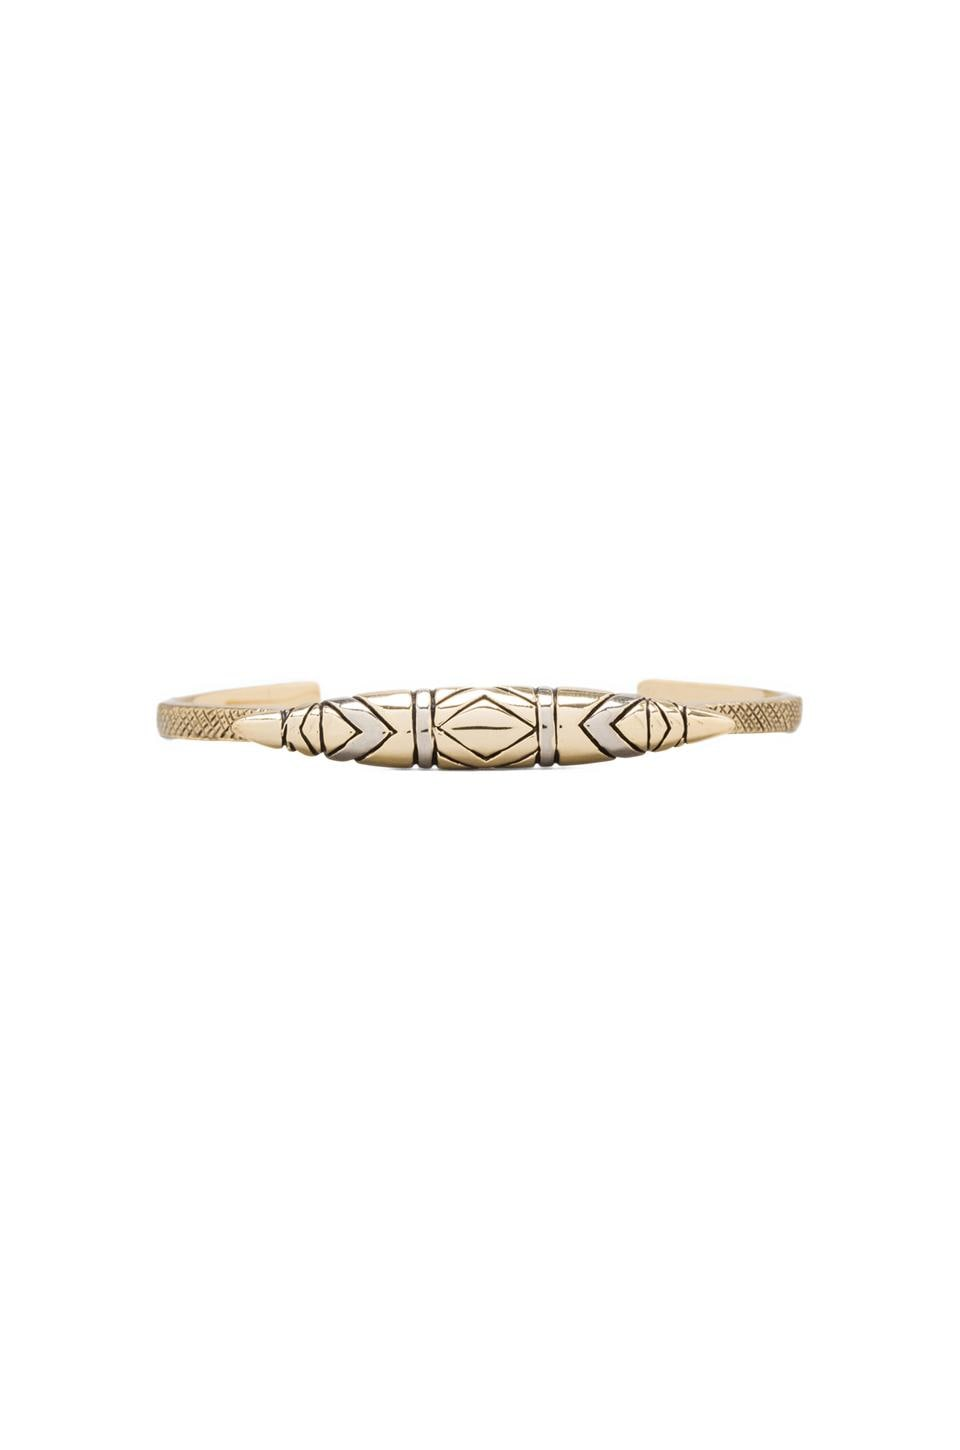 House of Harlow Tribal Totem Cuff in Two Tone